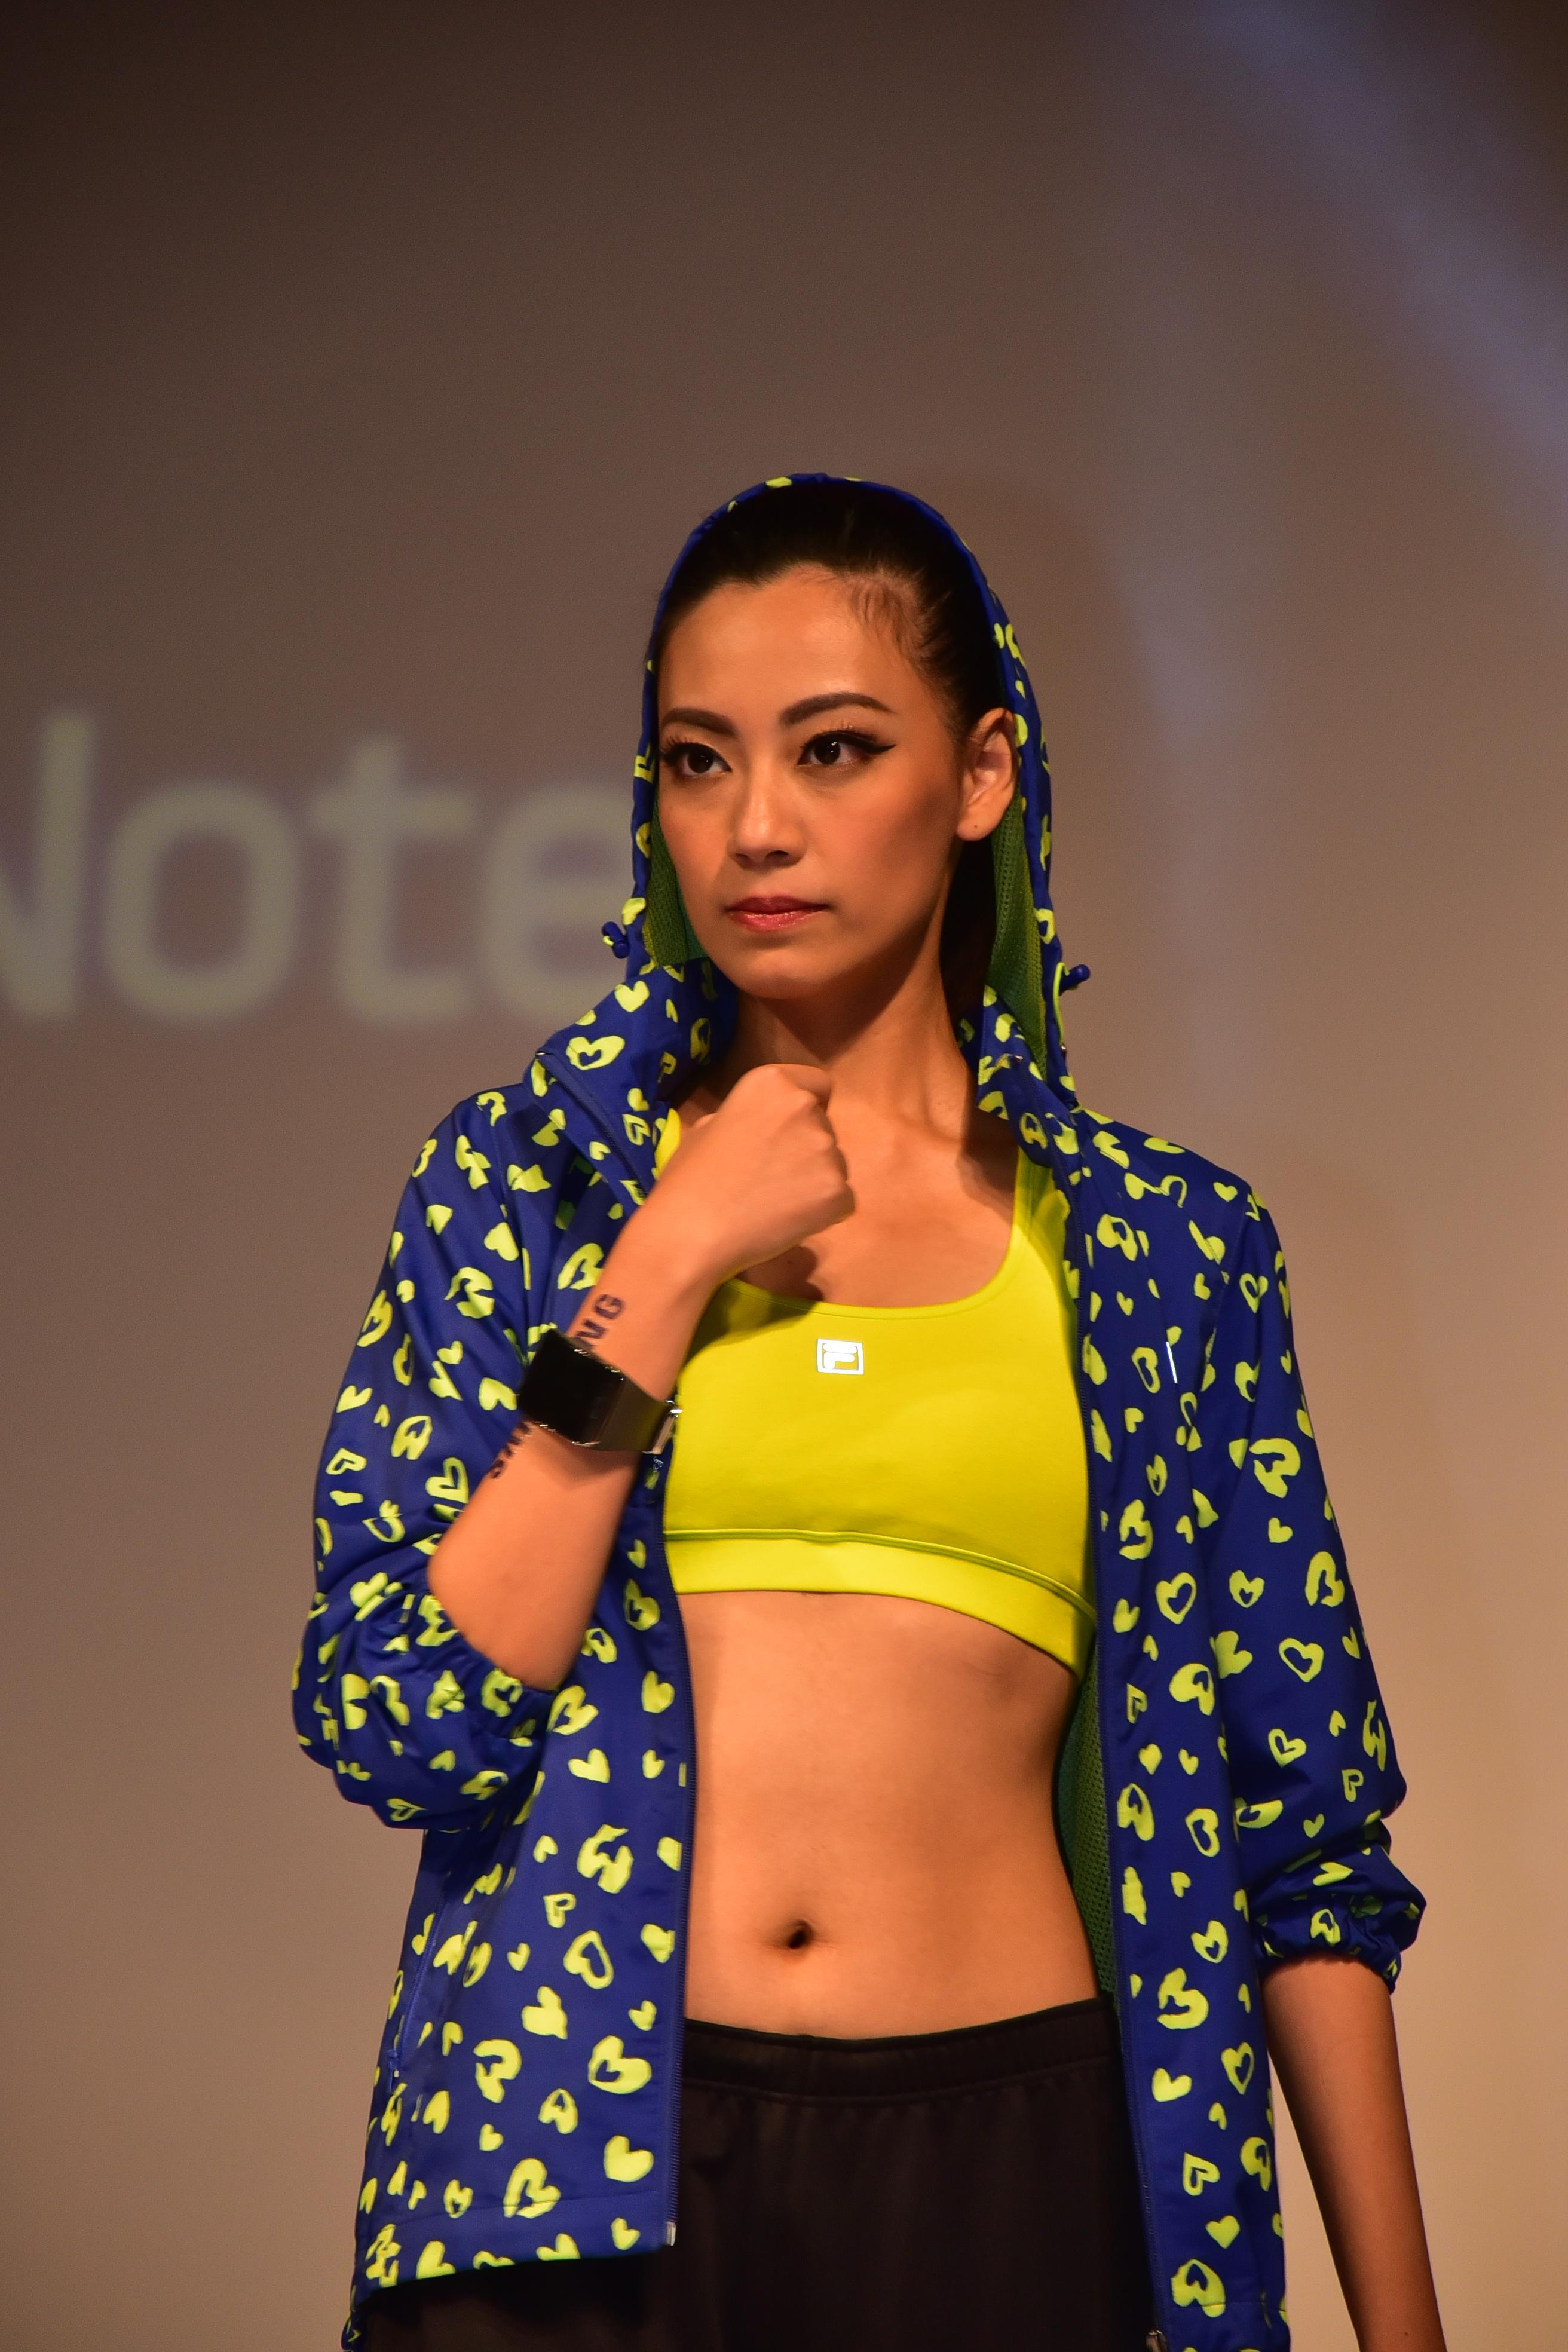 SAMSUNG GALAXY Note 4 with 歌后 蔡依林 !! - XFastest - DSC_2230.JPG